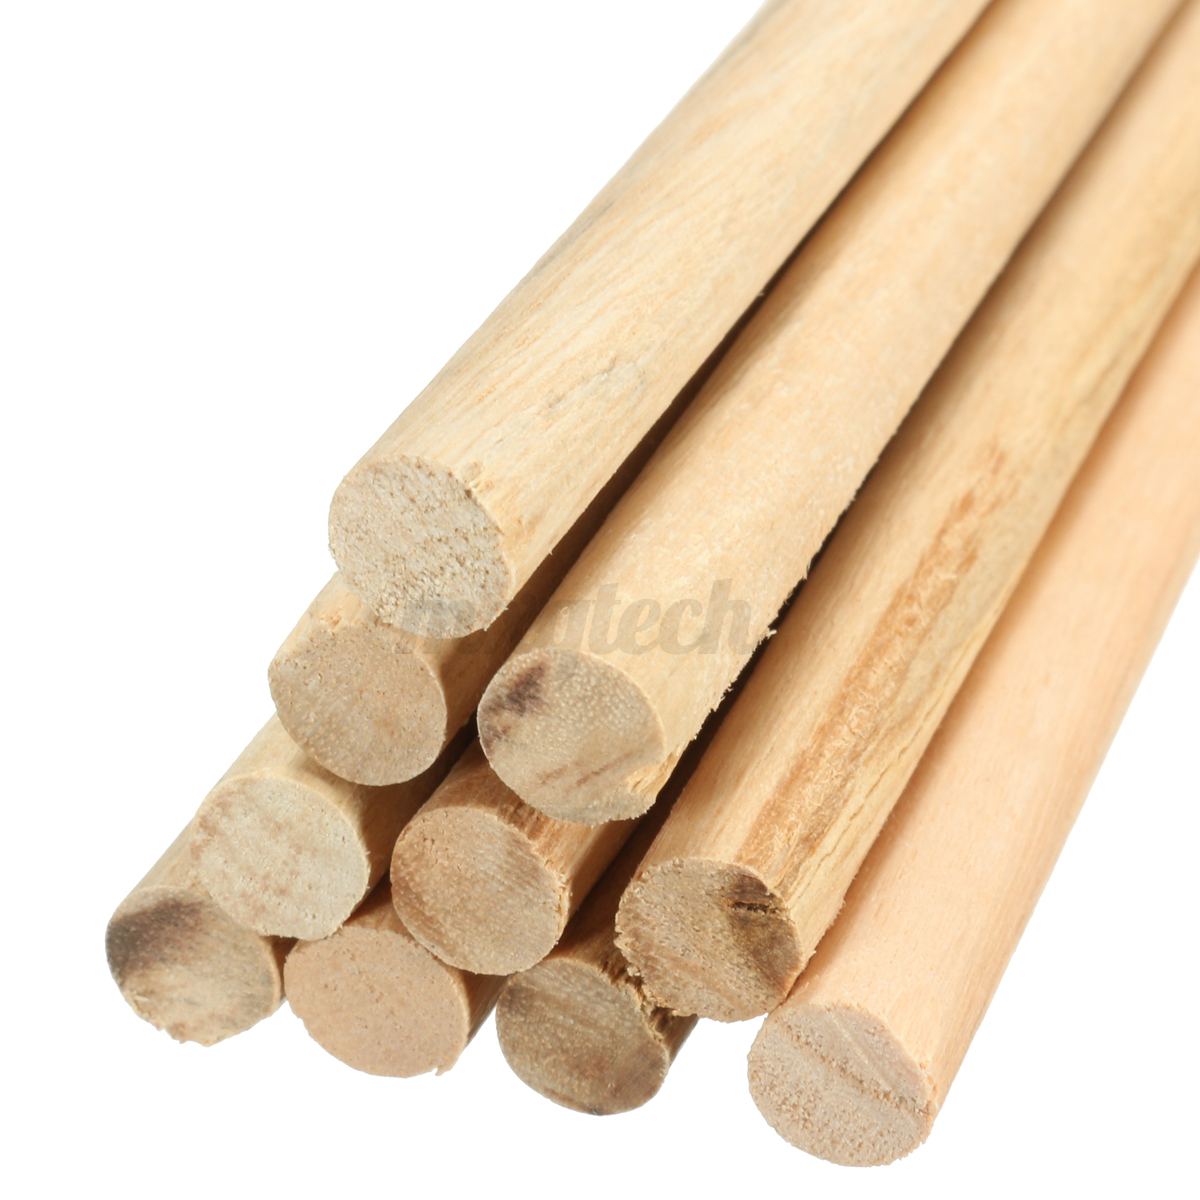 10pcs 20cm round wooden lollipop lolly sticks cake dowels for Wooden dowels for crafts